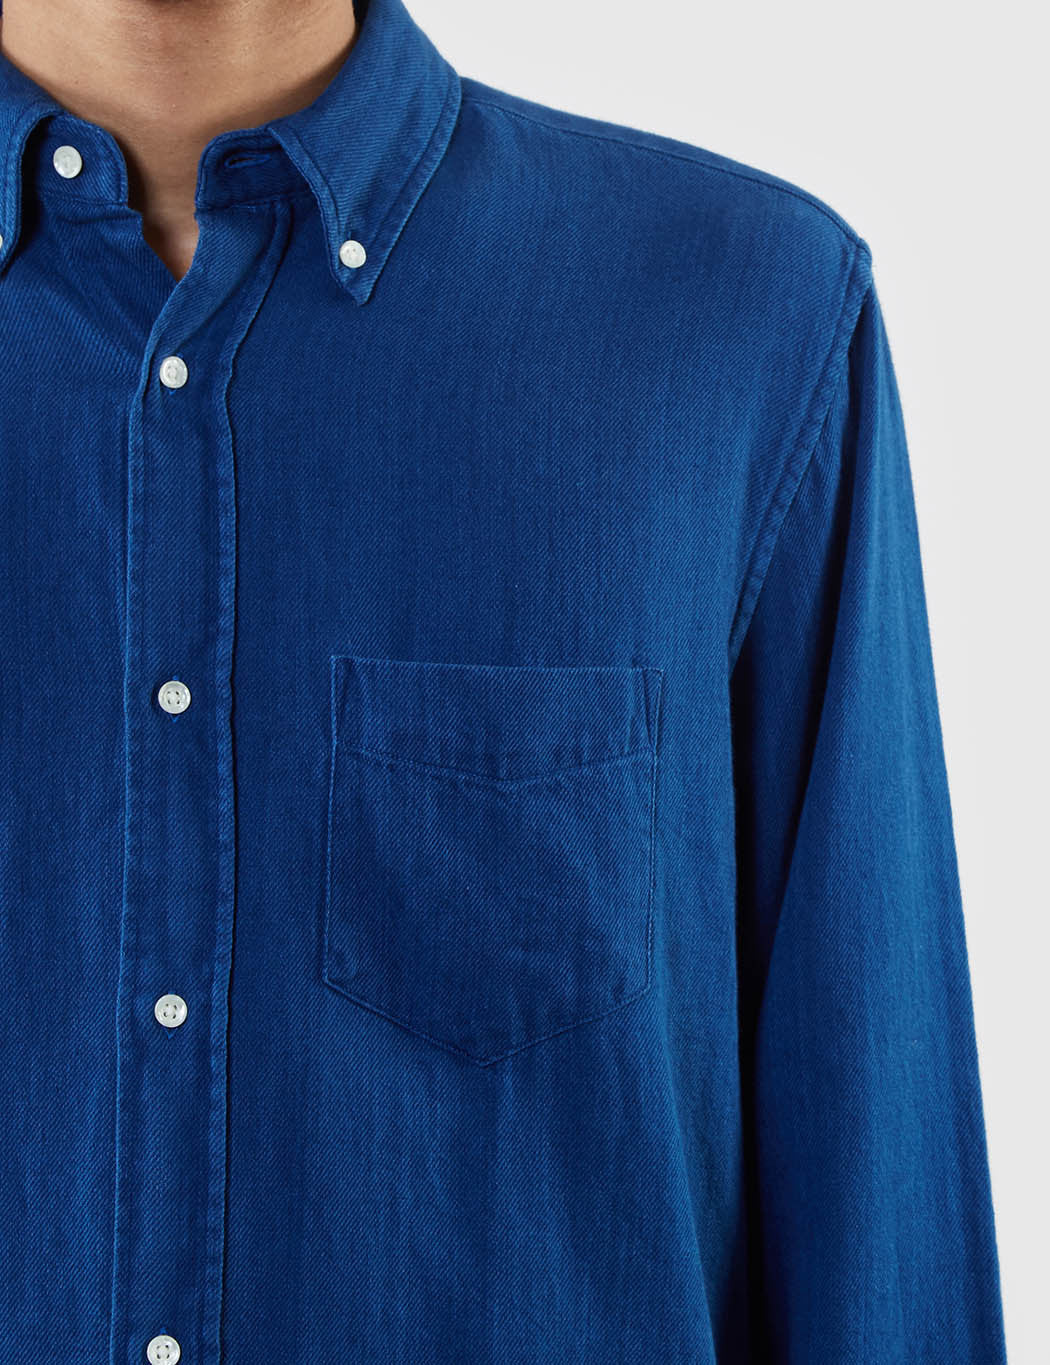 Gant Rugger Indigo Twill Loose Shirt - Indigo Blue